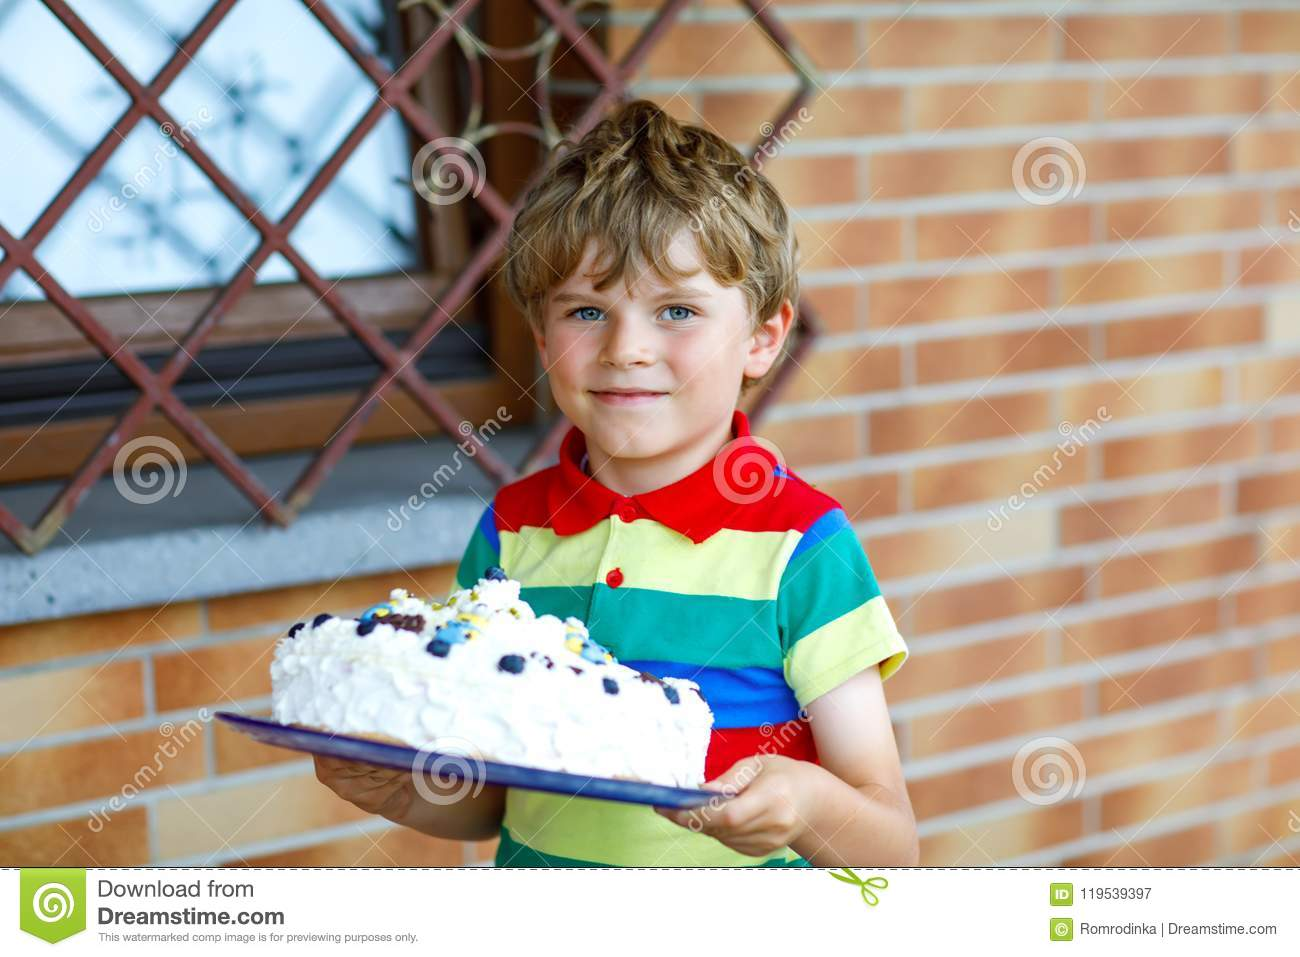 Cute Blond Kid Boy Holding Big Birthday Cake Happy Smiling Child Celebrating